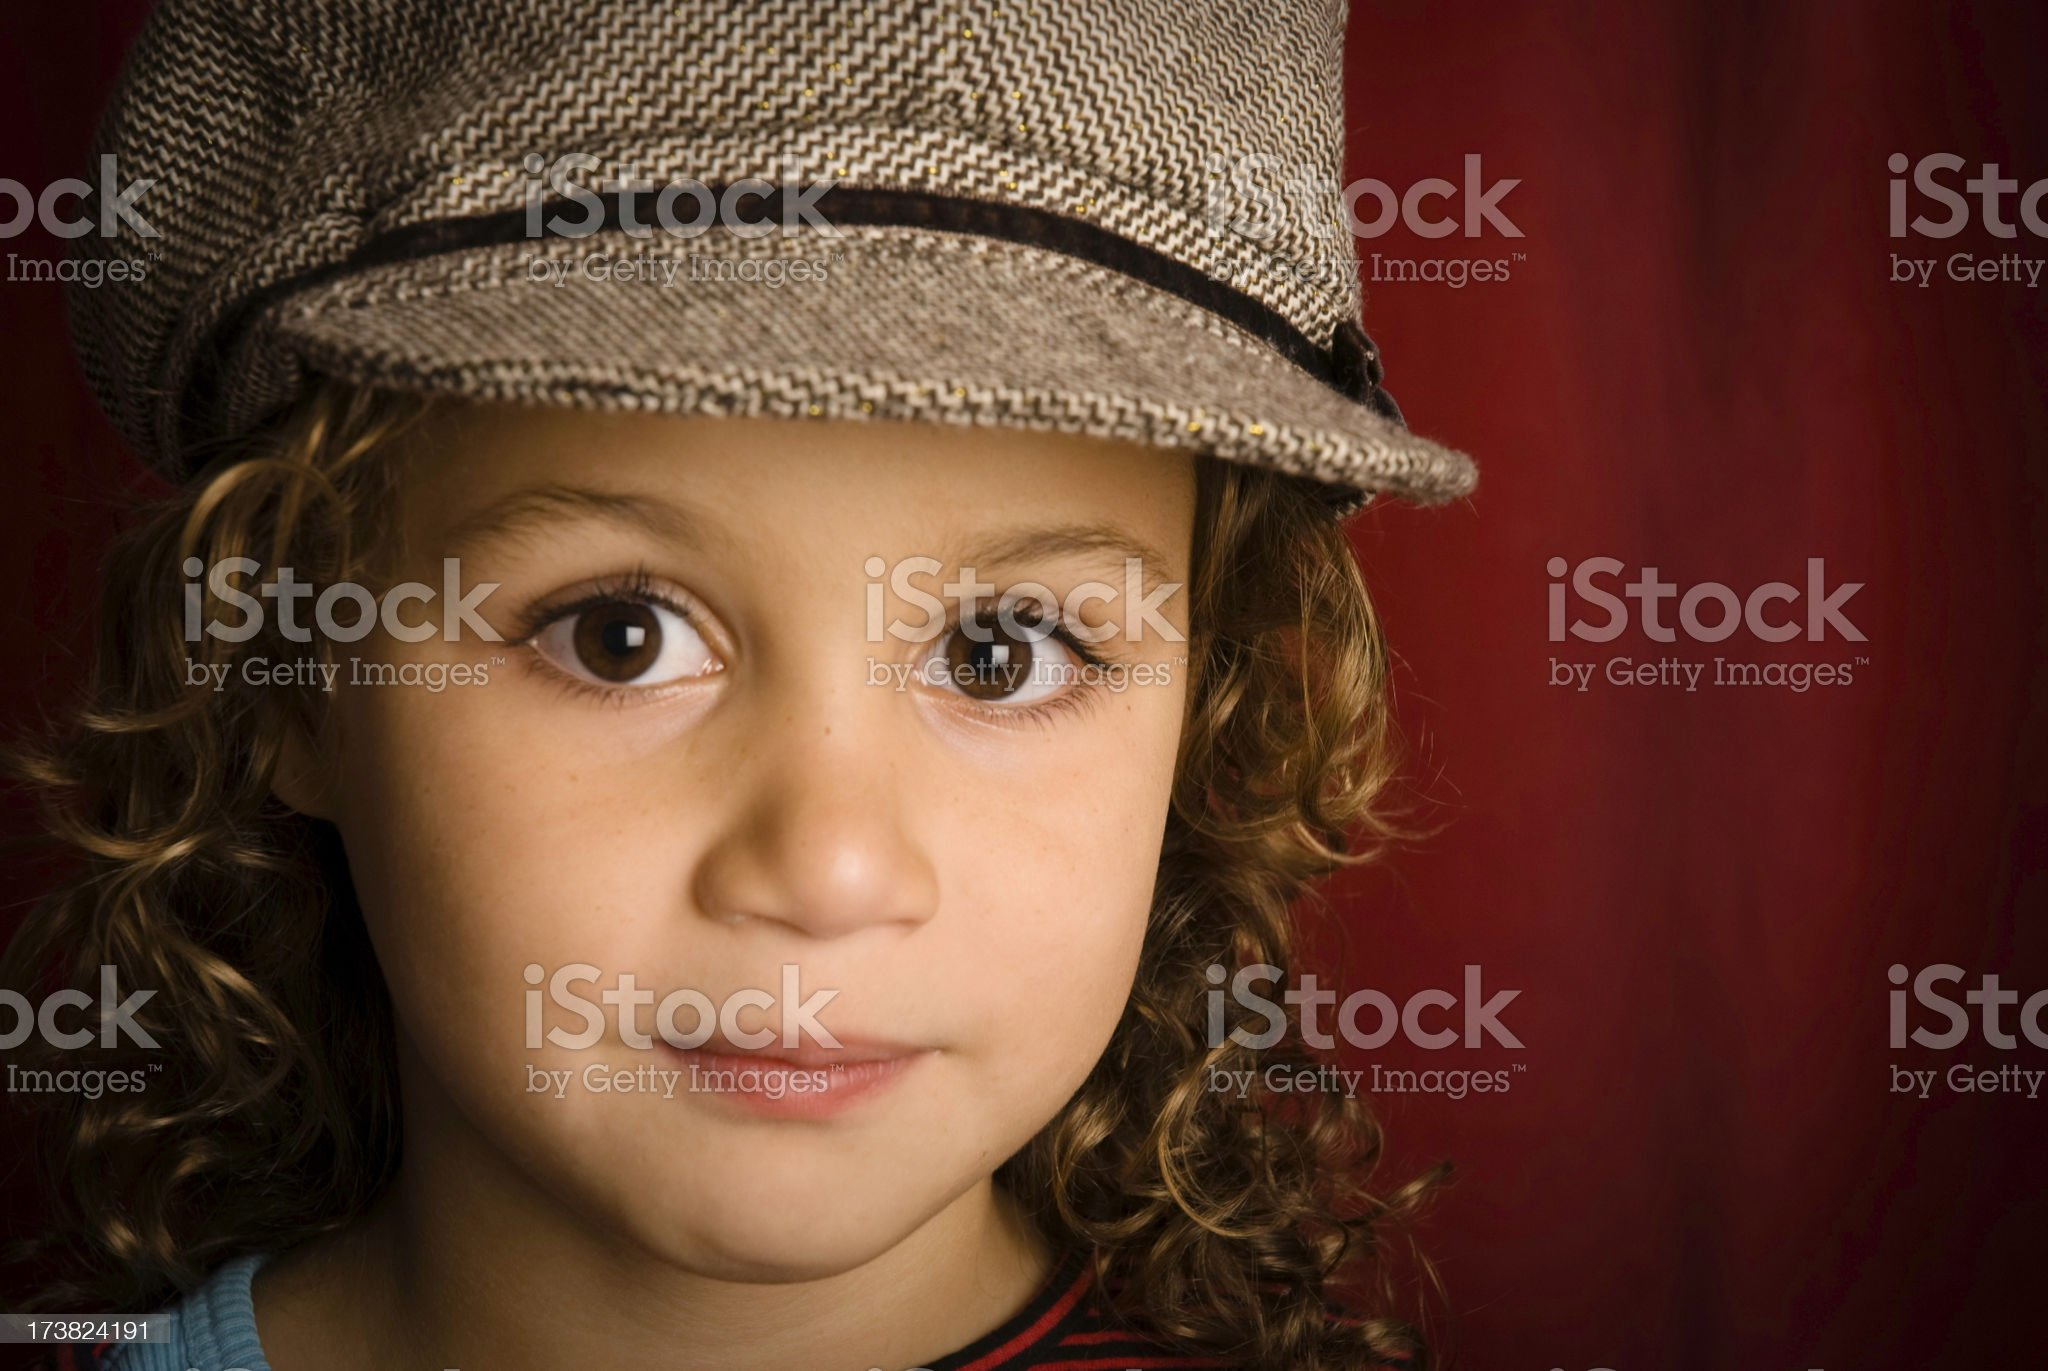 Cute girl royalty-free stock photo